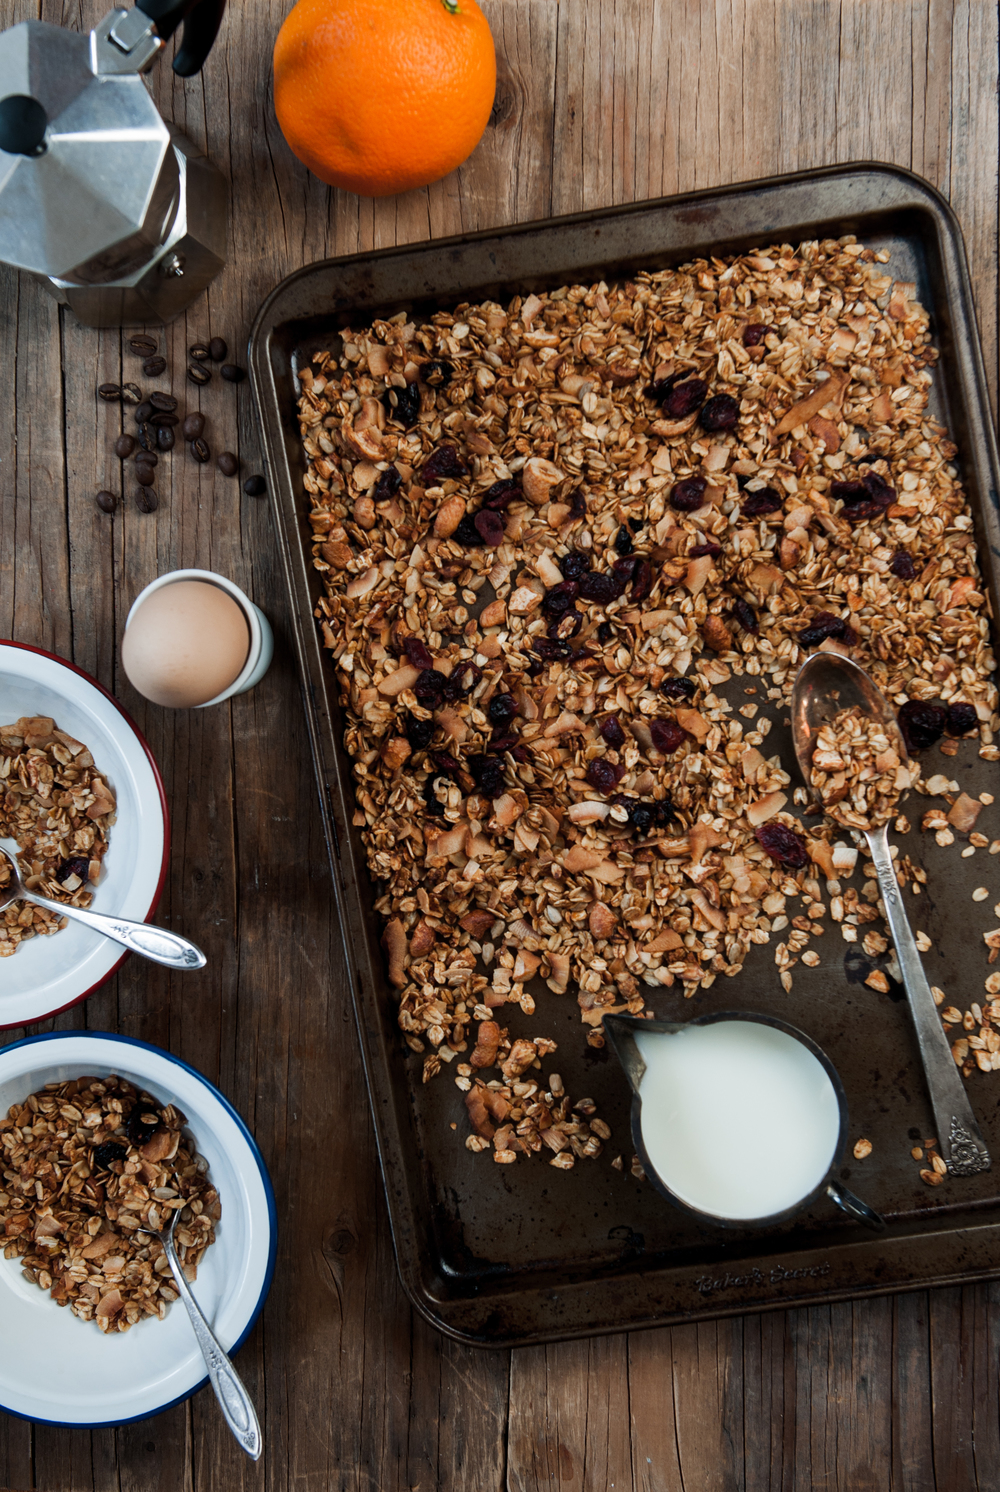 Homemade-breakfast-granola.jpg